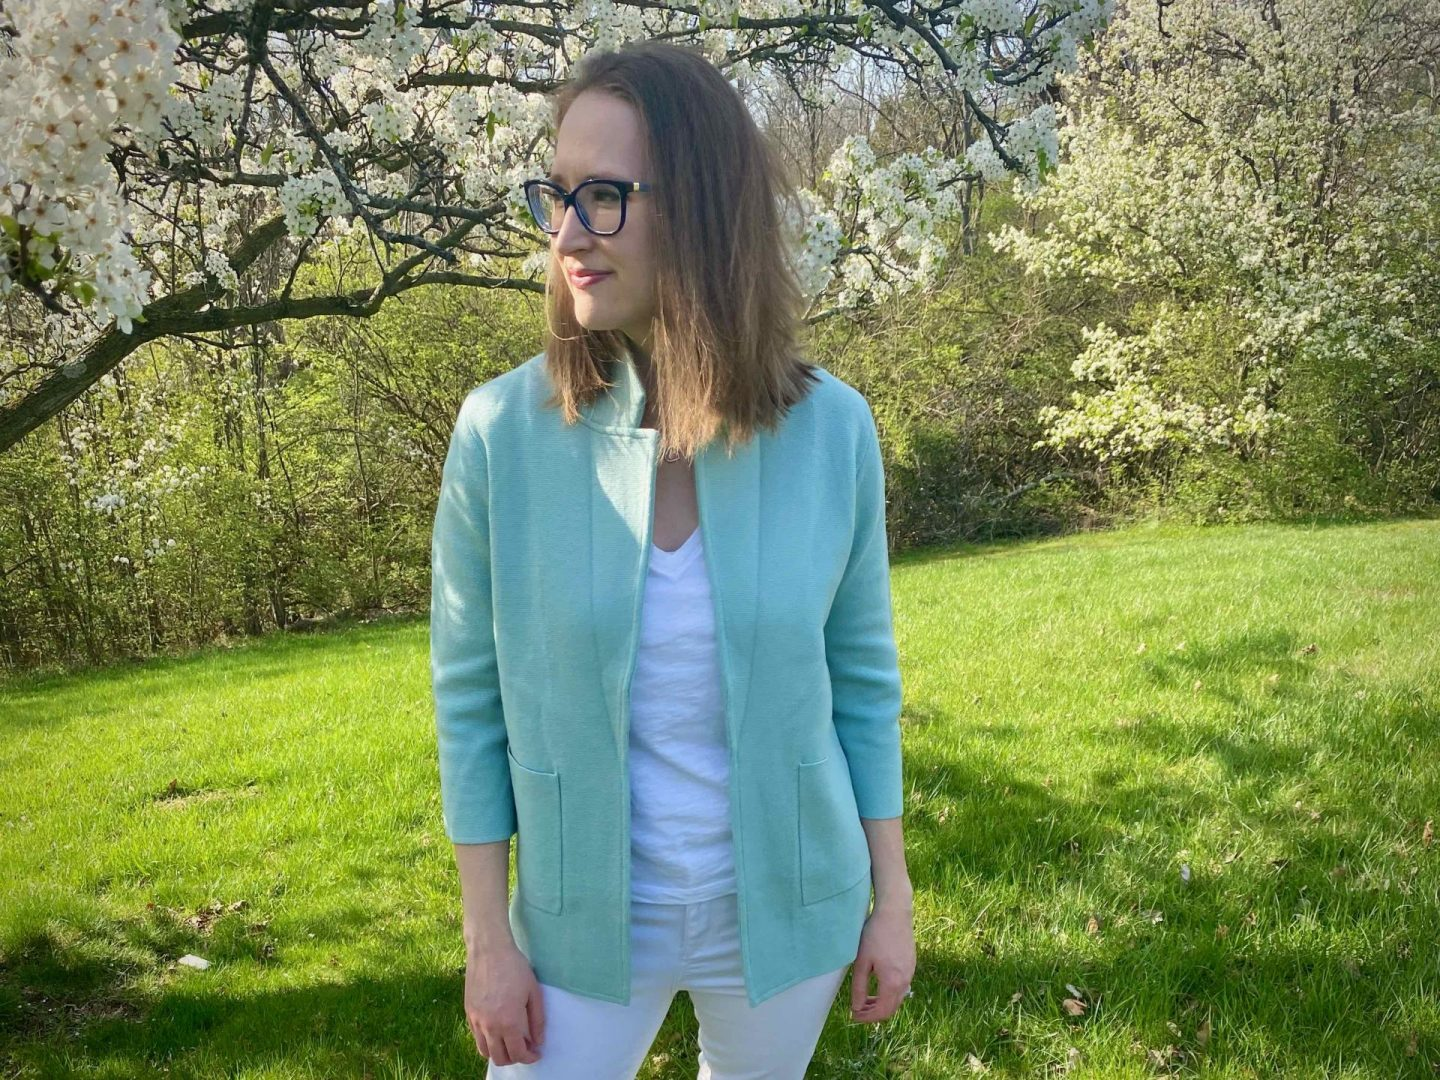 Casual Spring Outfit | 10 Strategies to Effectively Work From Home | The Spectacular Adventurer